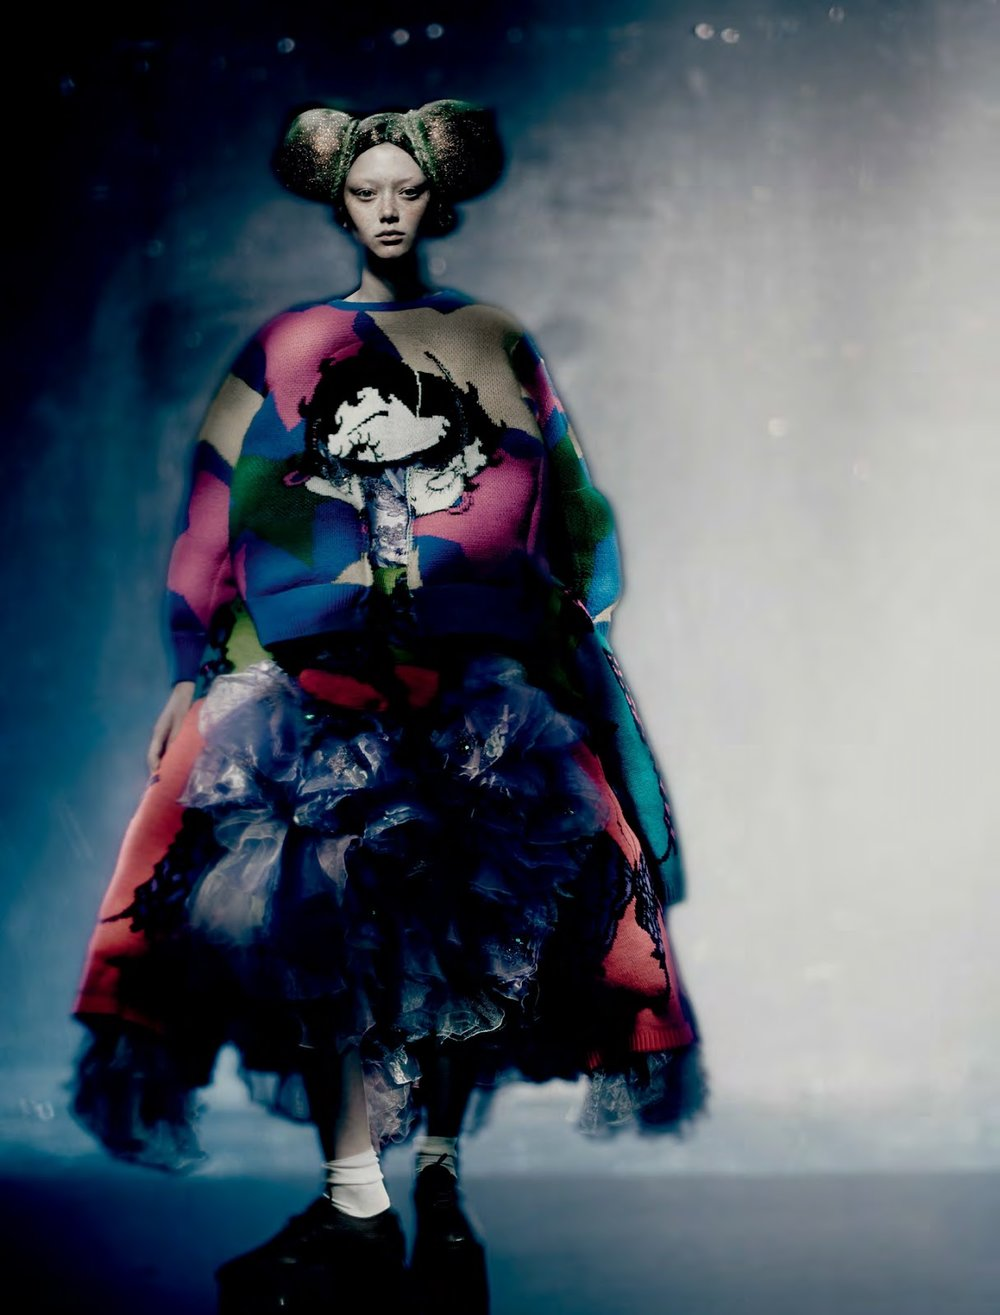 Sara+Grace+Wallerstedt+by+Paolo+Roversi+Dazed+Digital+(10)